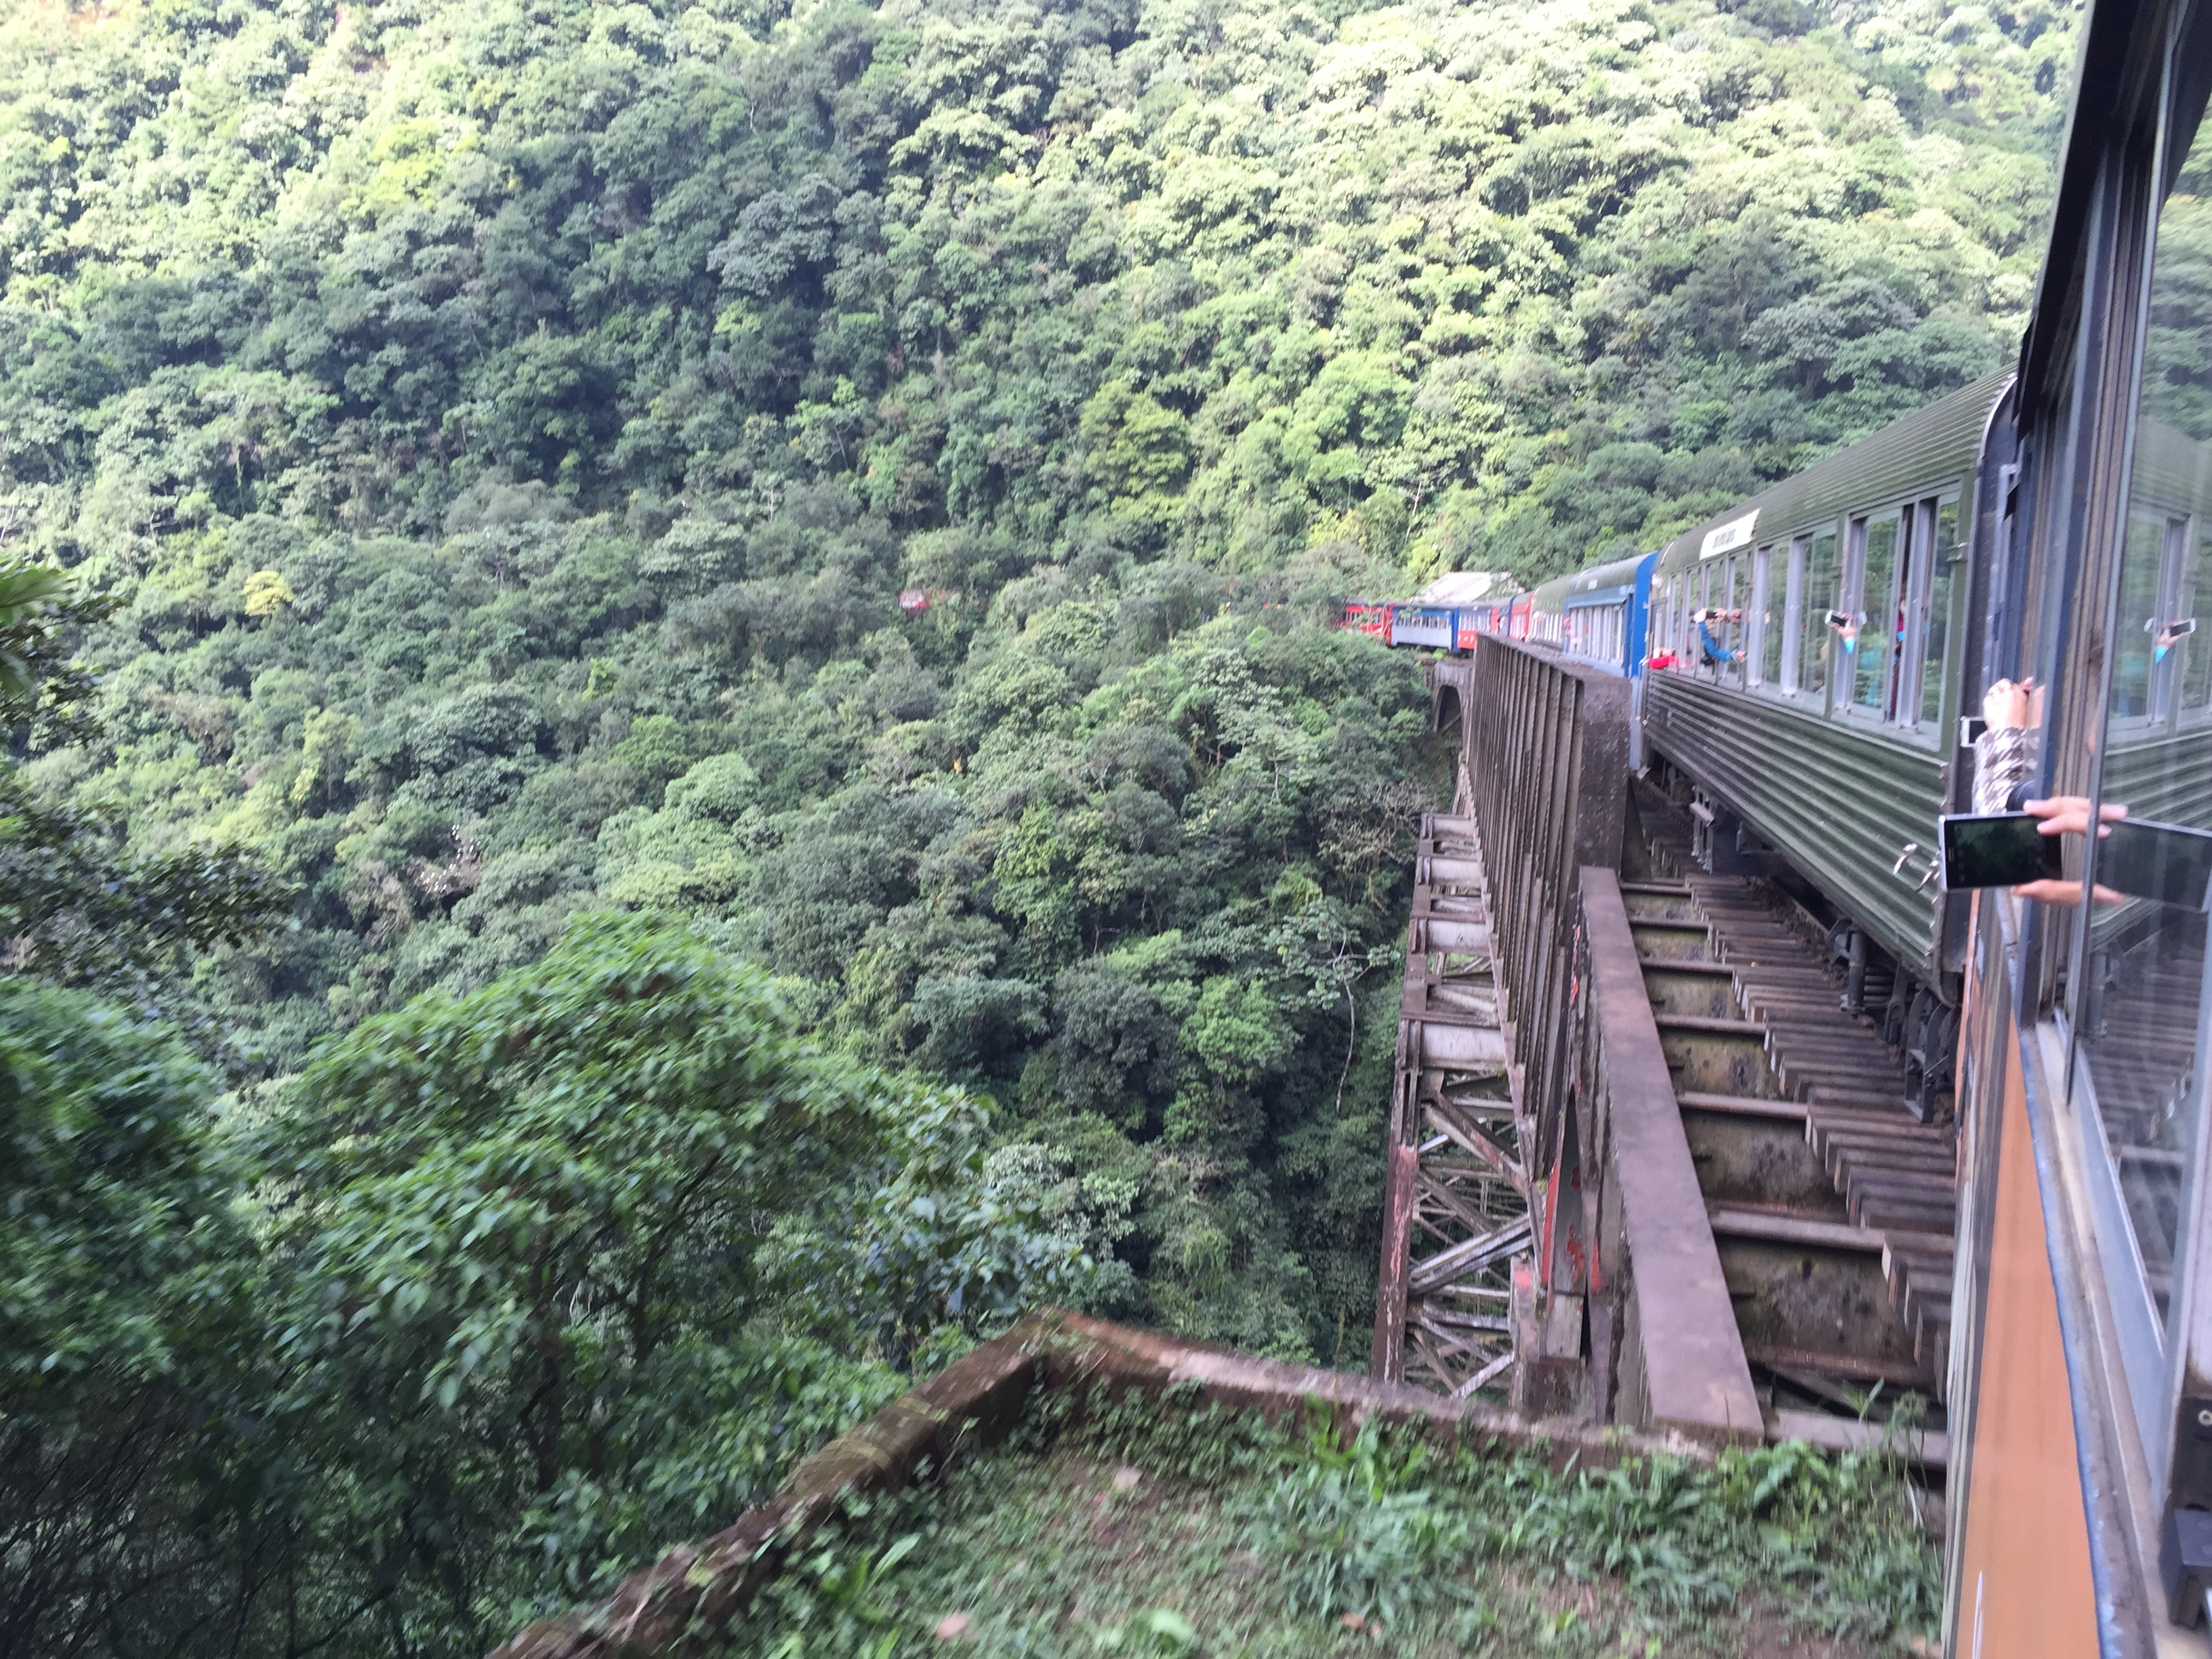 A day trip on the Serra Verde Express to Morretes